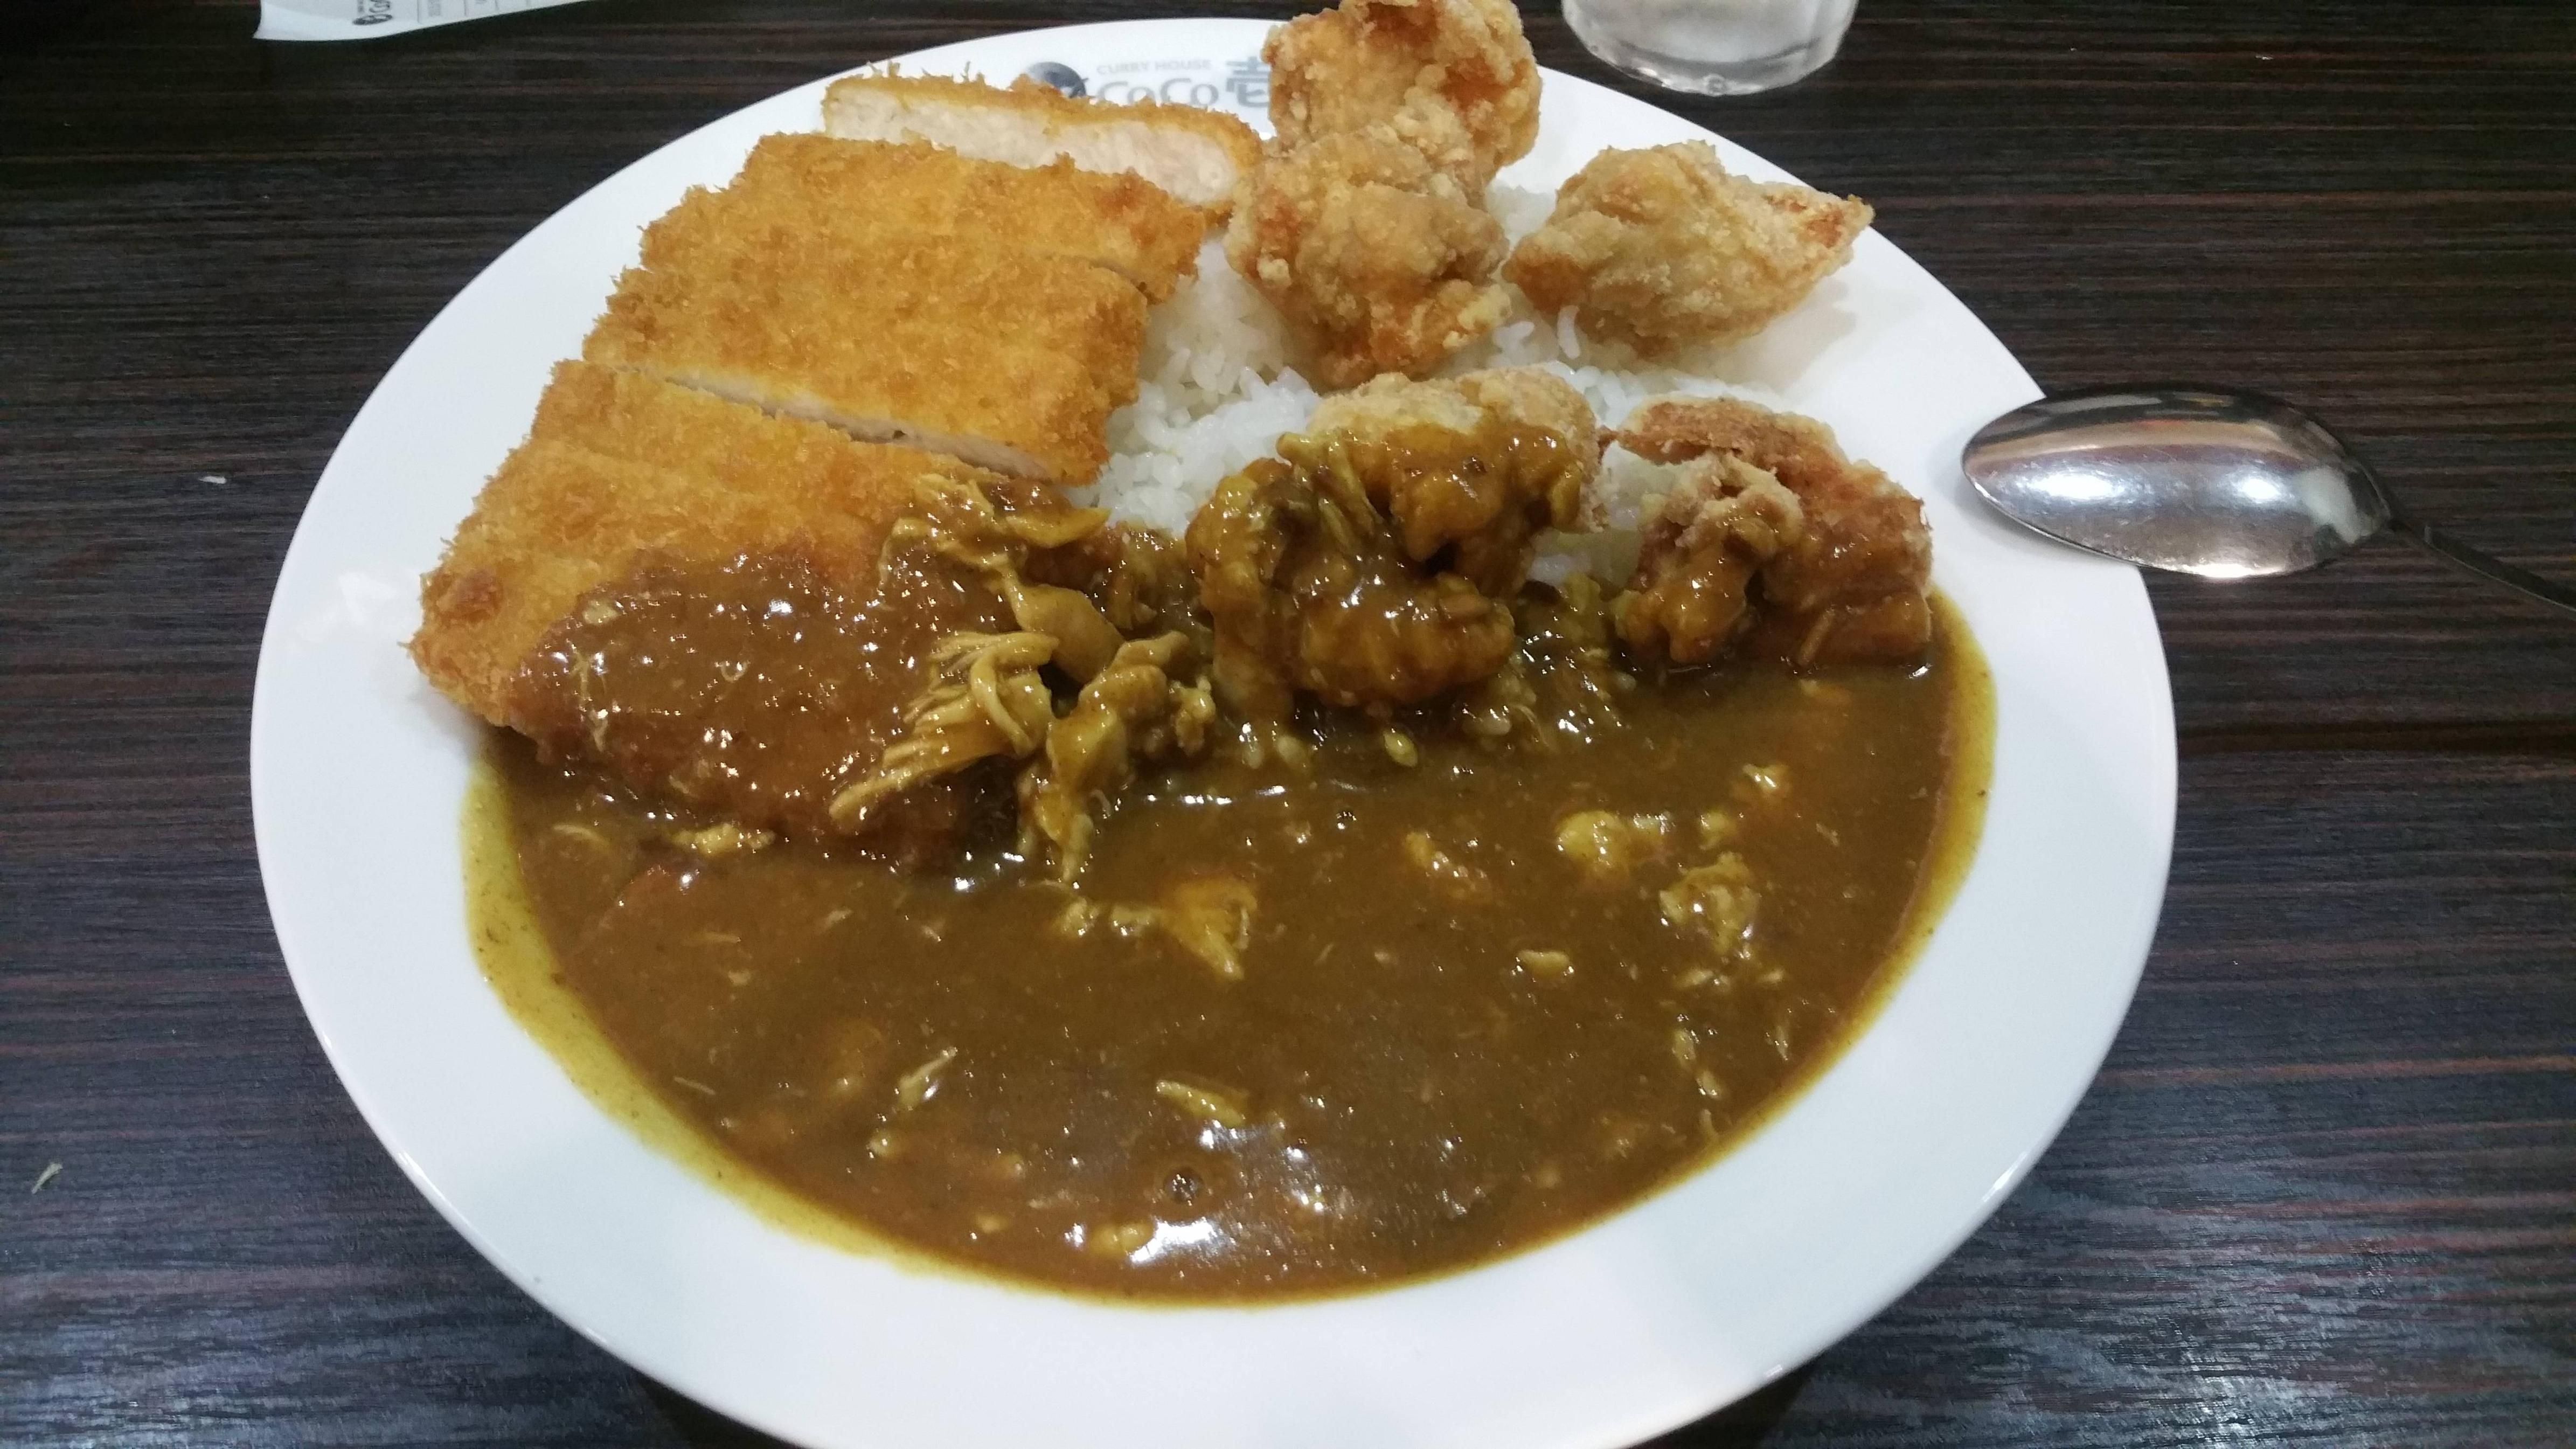 Delicious Japanese Curry With Chicken Katsu And More From Curry House In Shimbashitokyojapan Recipes Food Cooking Deliciou Japanese Curry Delicious Food